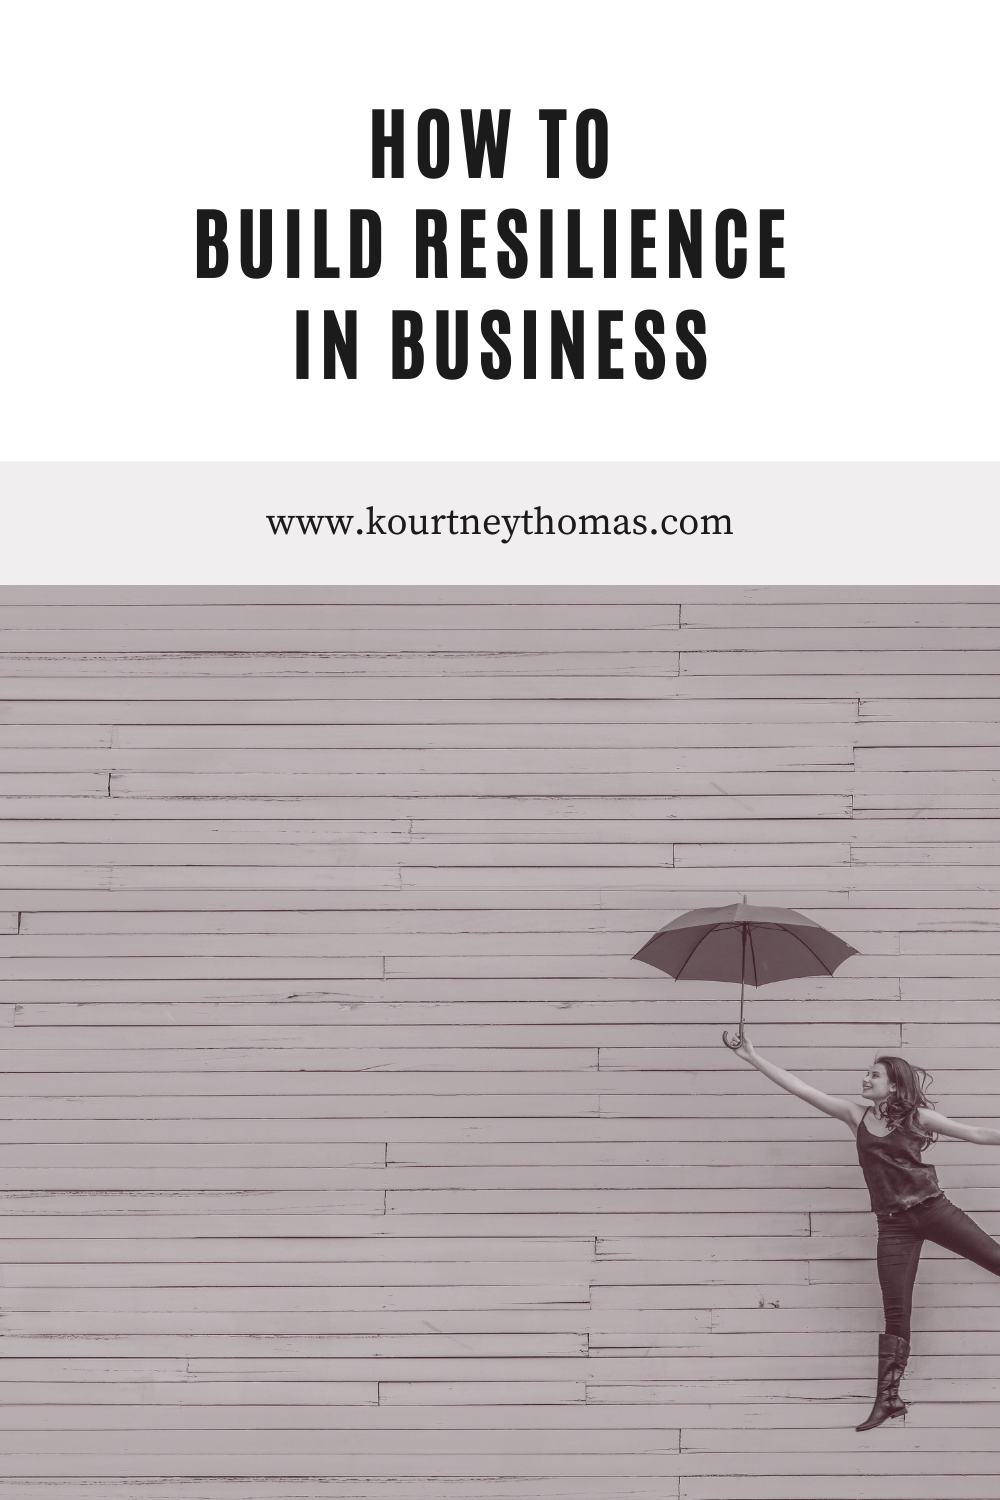 build resilience in business   kourtney thomas fitness life coach